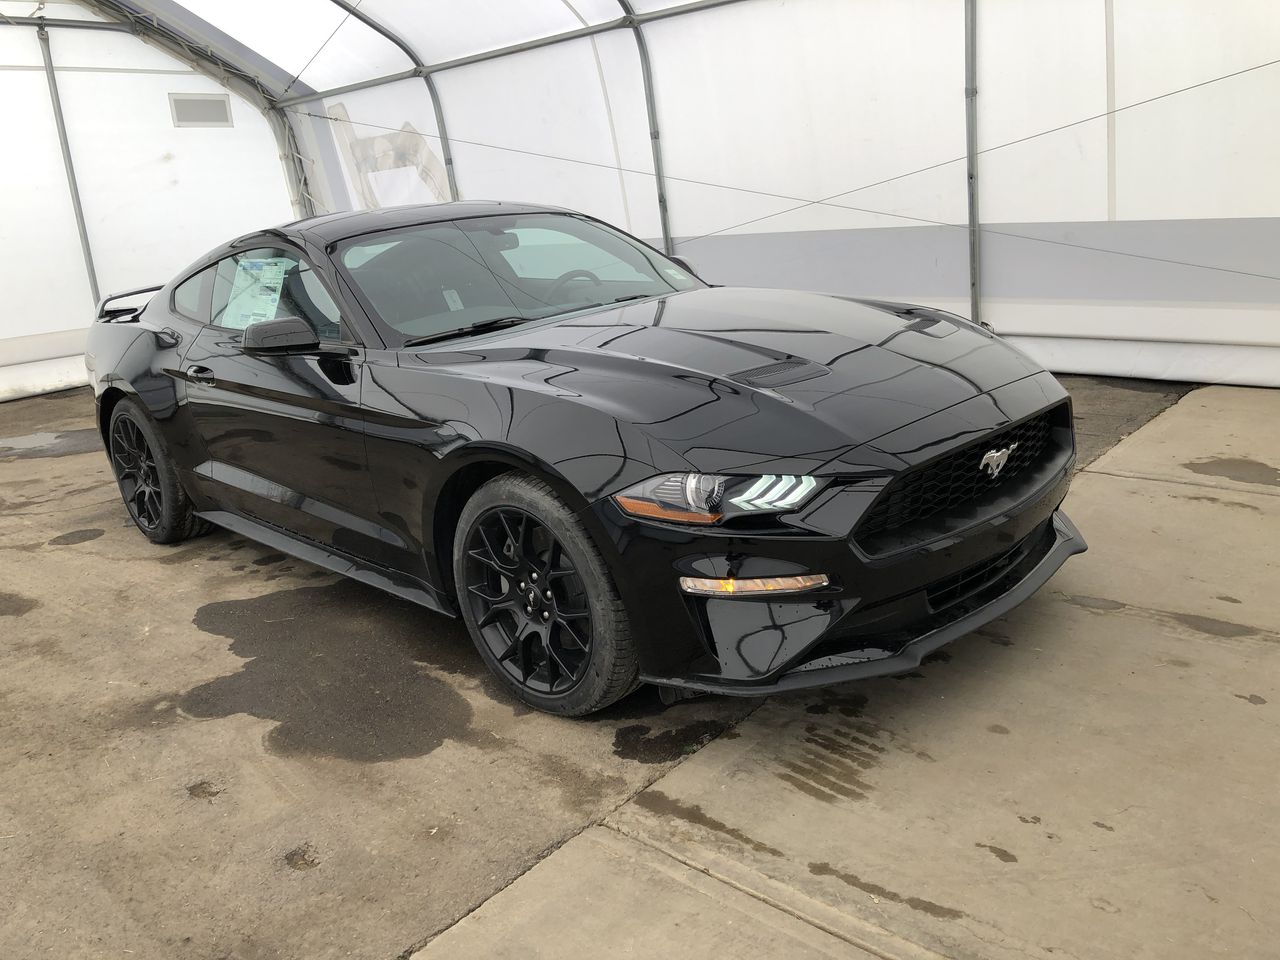 2018 Ford Mustang Ecoboost (0N6223) Main Image